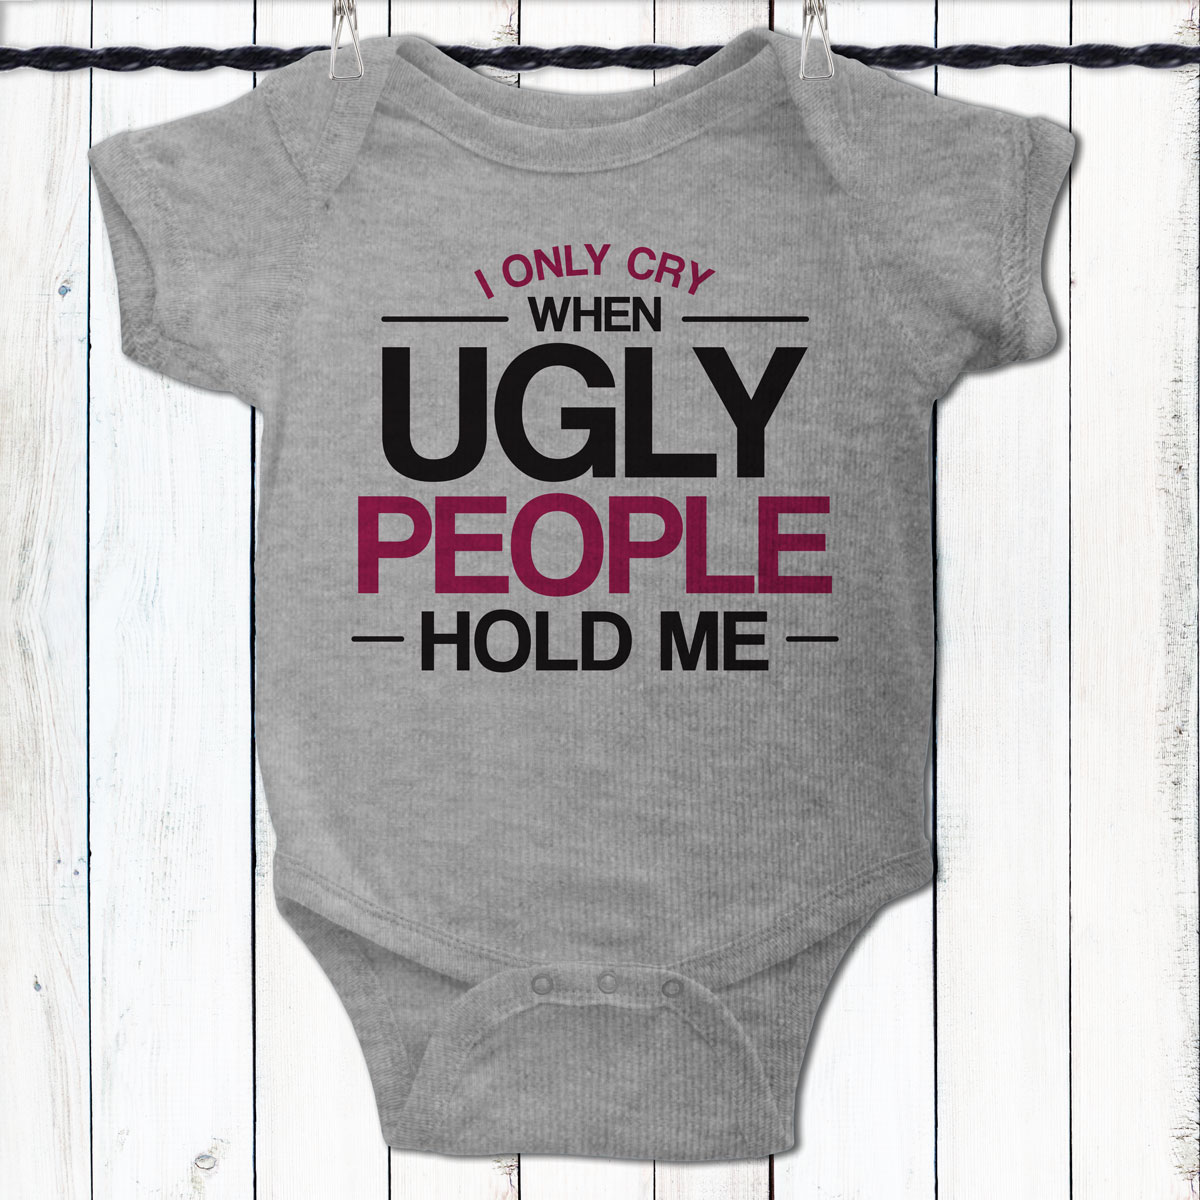 I Only Cry When Ugly People Hold Me. Funny Newborn Baby Bodysuit